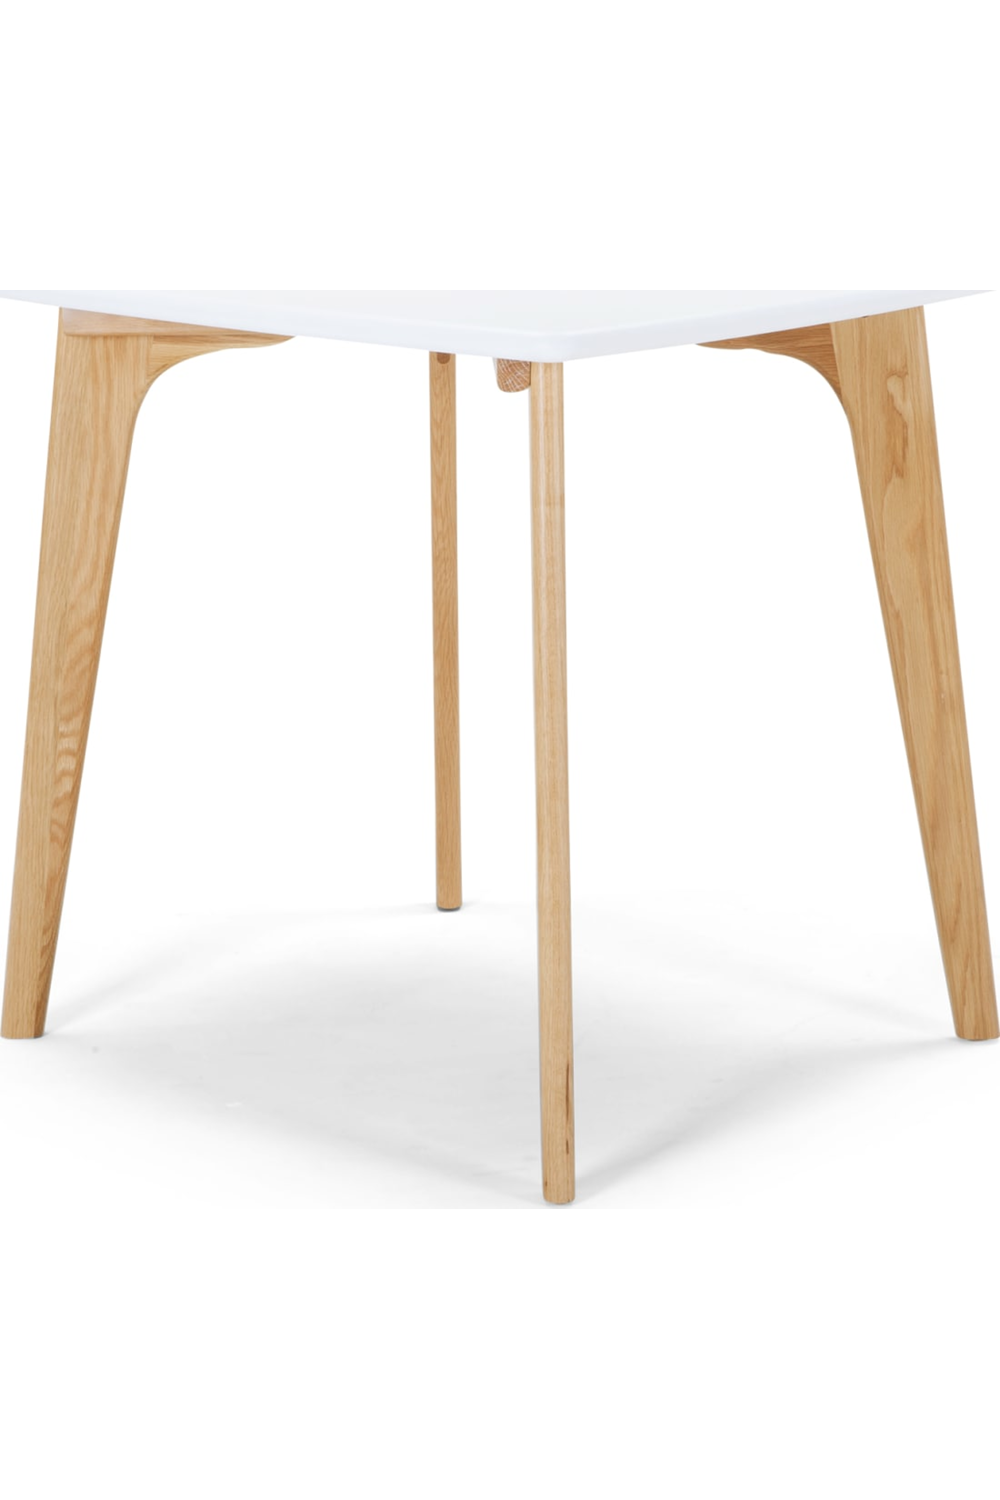 Fjord 4 Seat Square Compact Dining Table Oak And White Esstisch